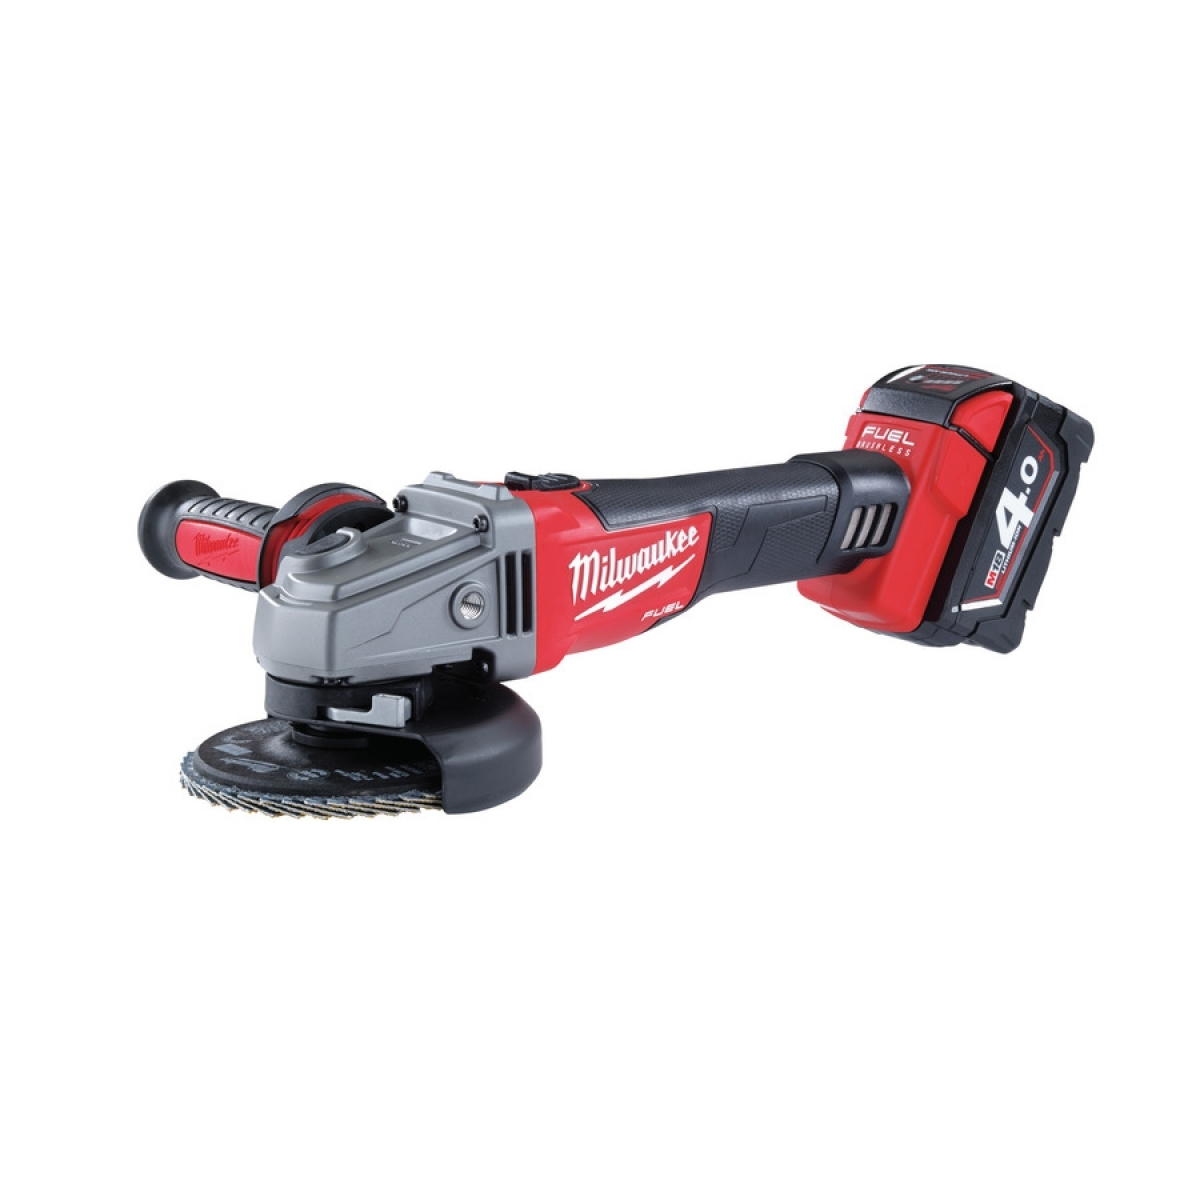 Battery Powered Grinder ~ Milwaukee m fuel mm cordless angle grinder my power